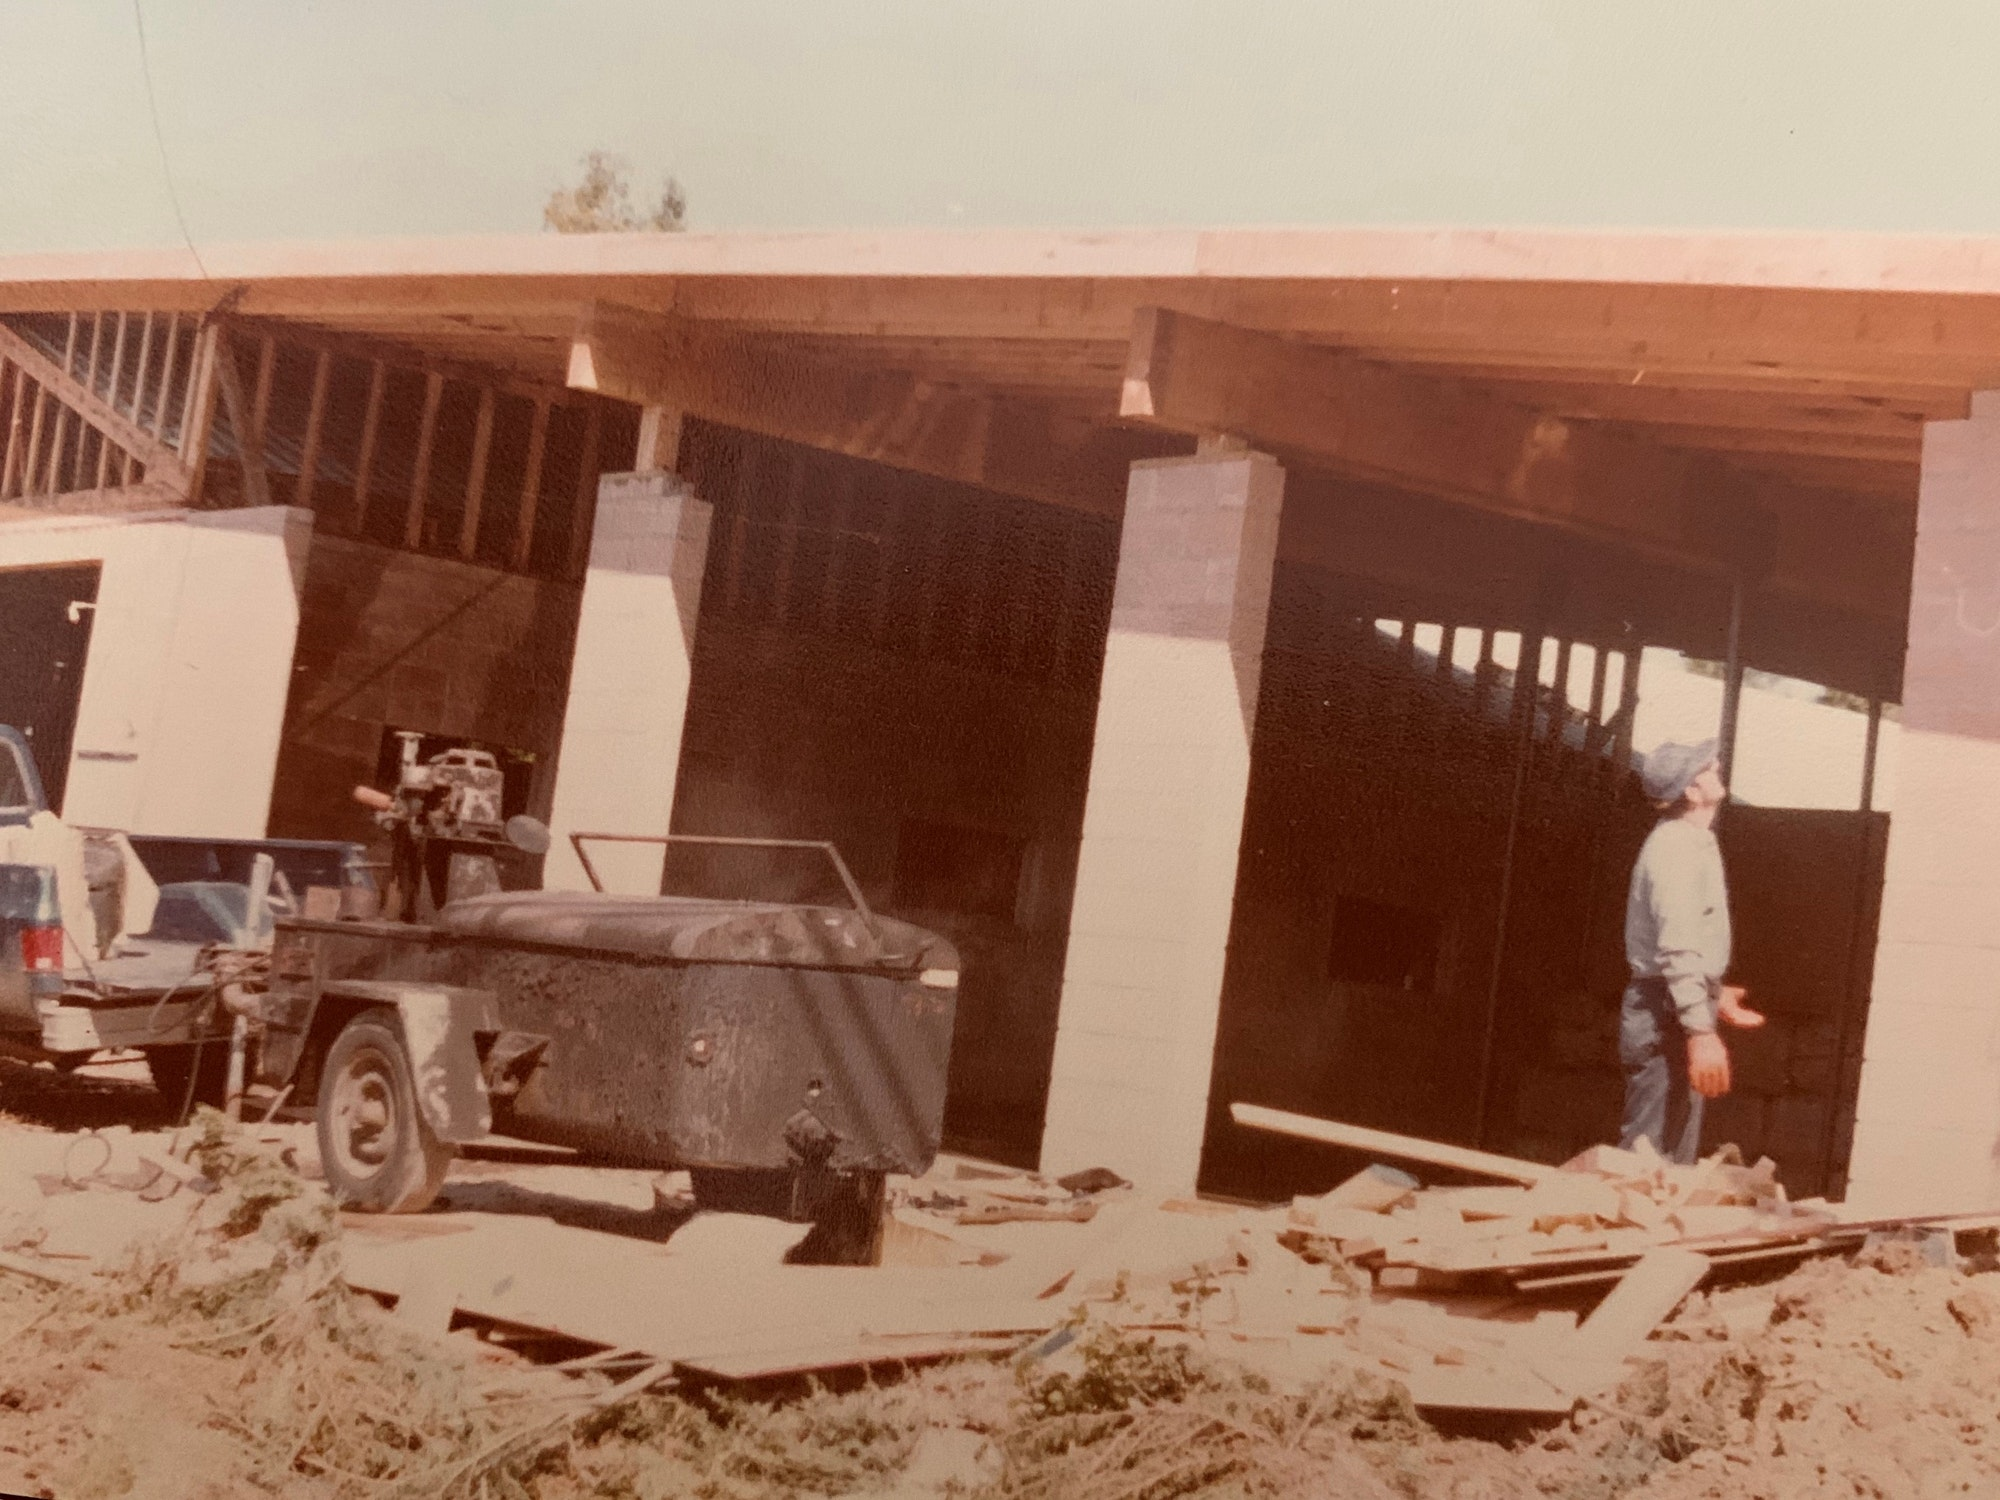 Fire station under construction with person standing in front